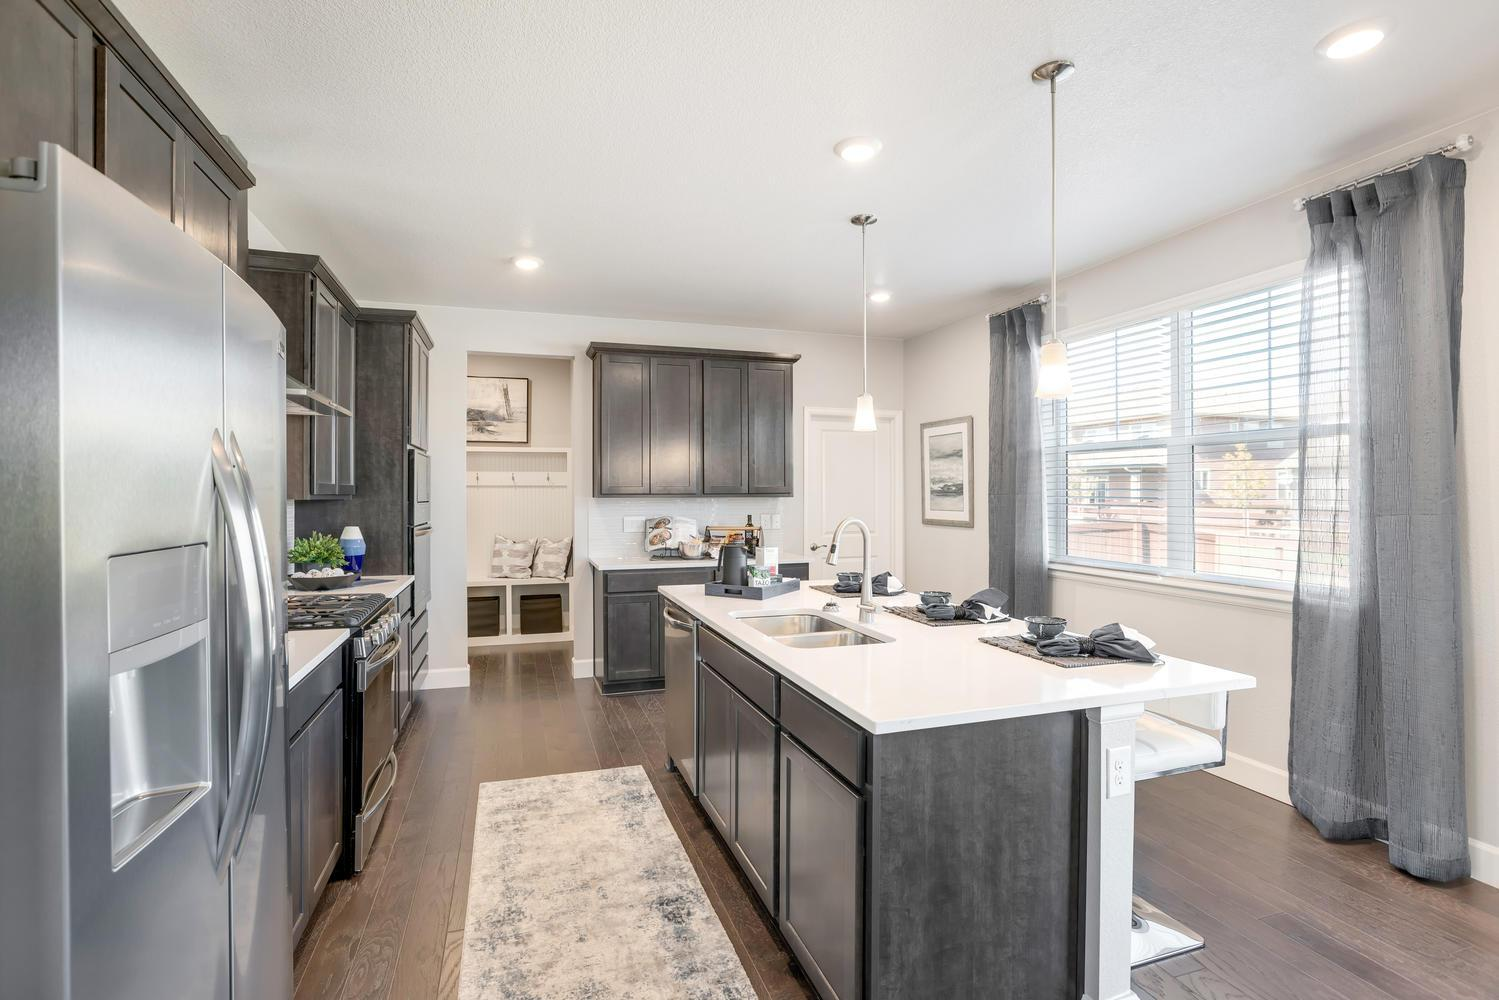 Kitchen featured in the ARVADA By D.R. Horton in Denver, CO